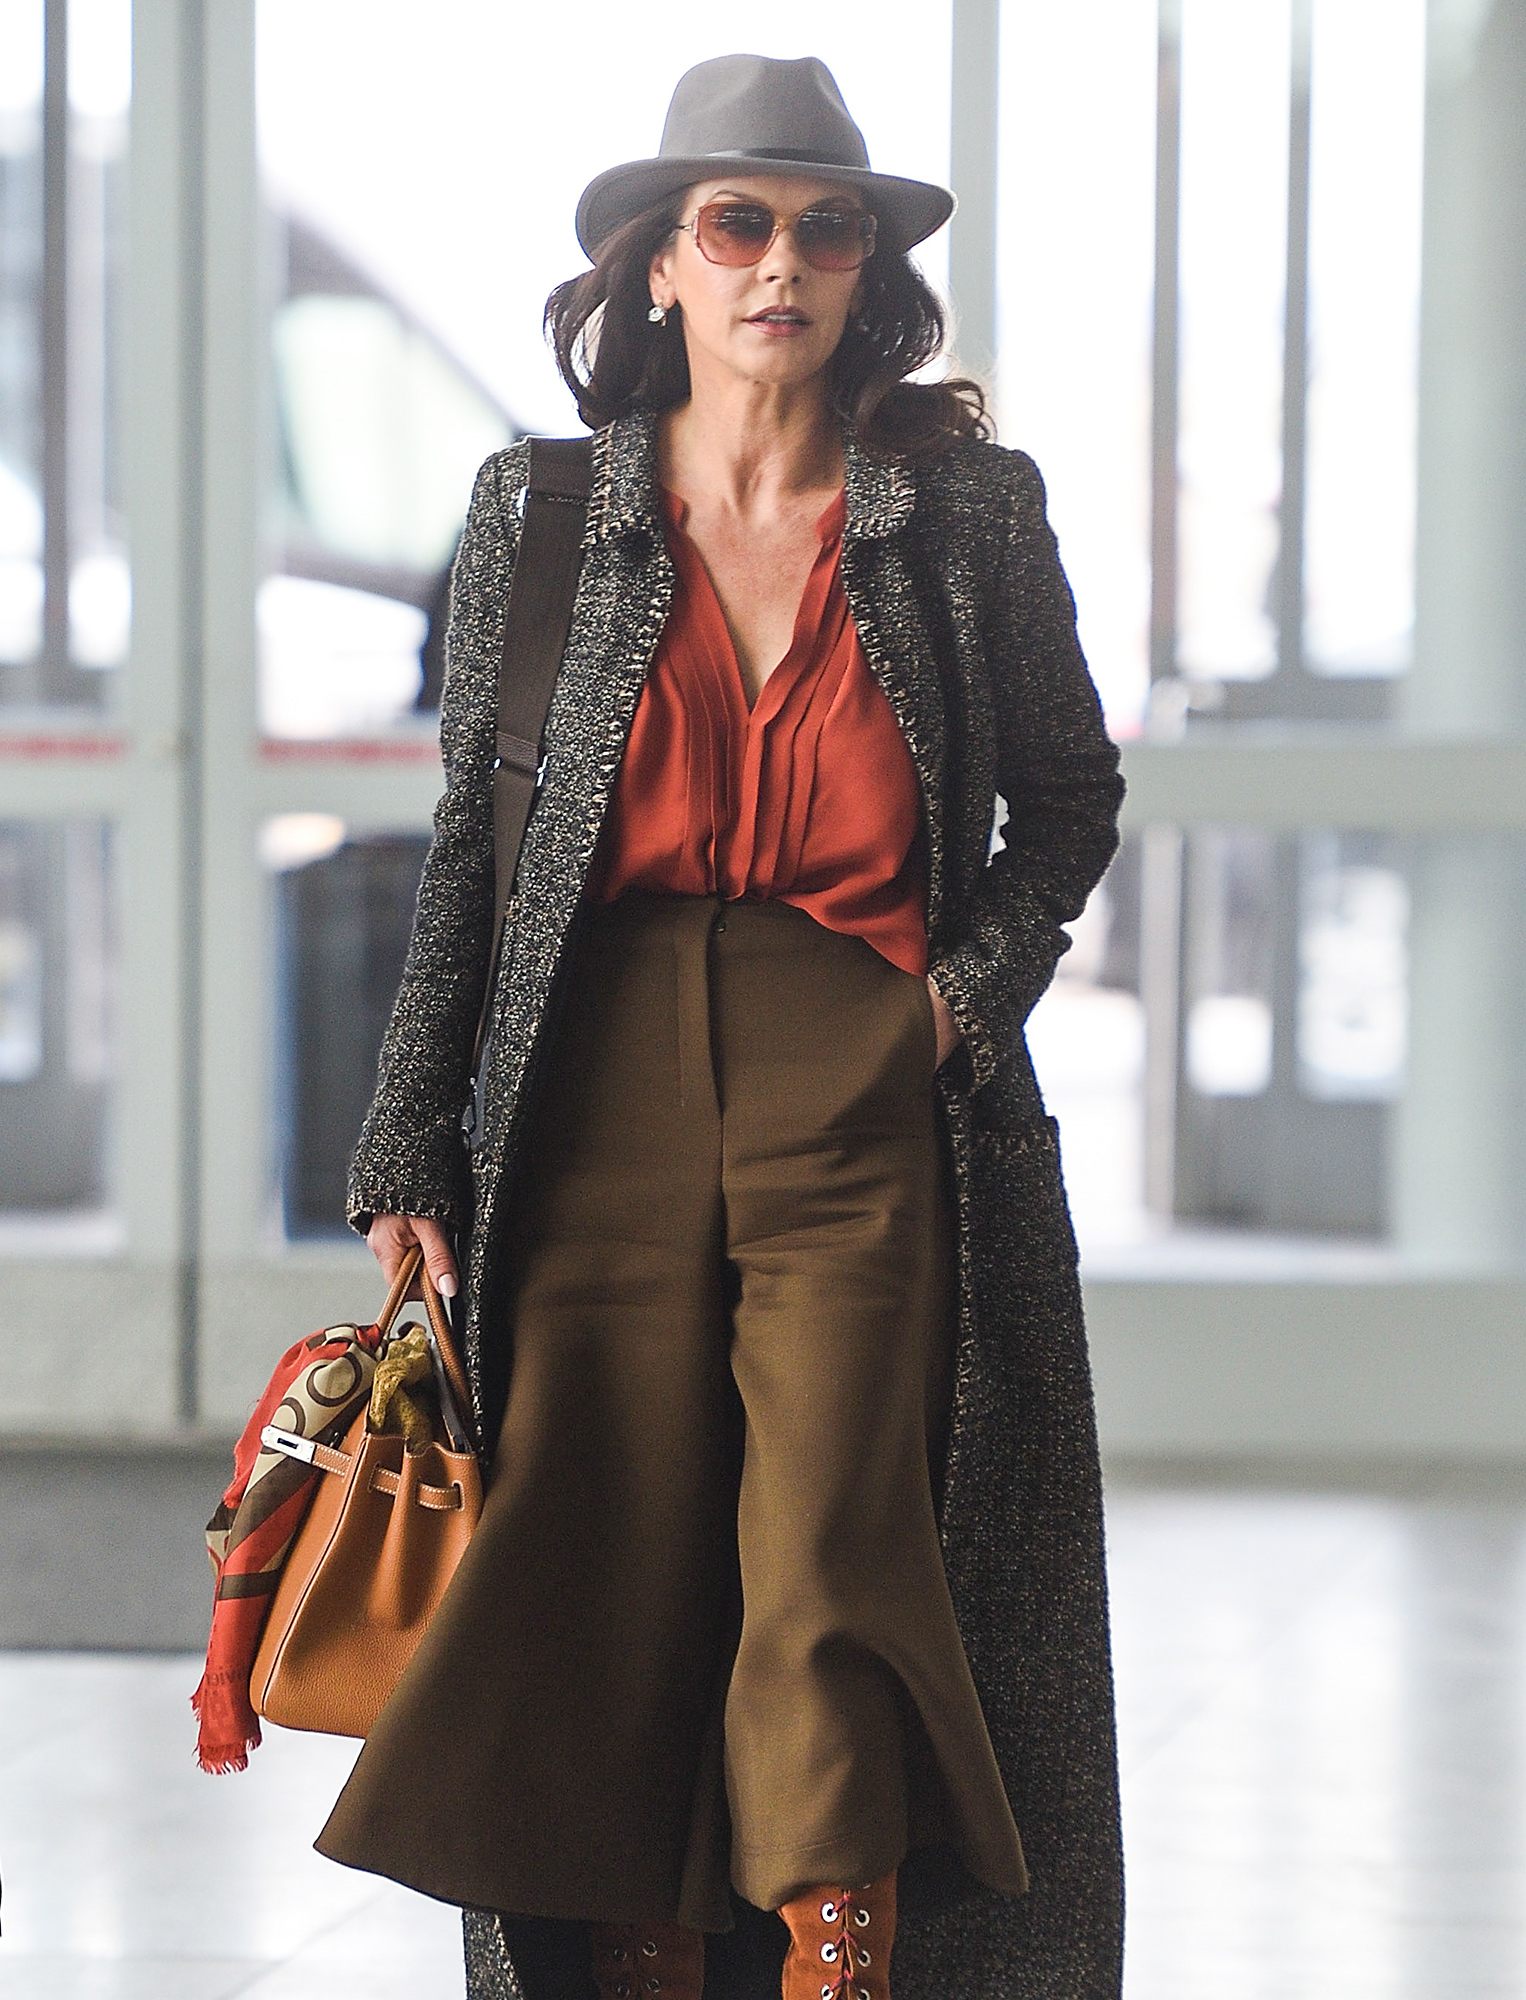 EXCLUSIVE: Catherine Zeta-Jones Looks Glamorous While Arriving to an Airport